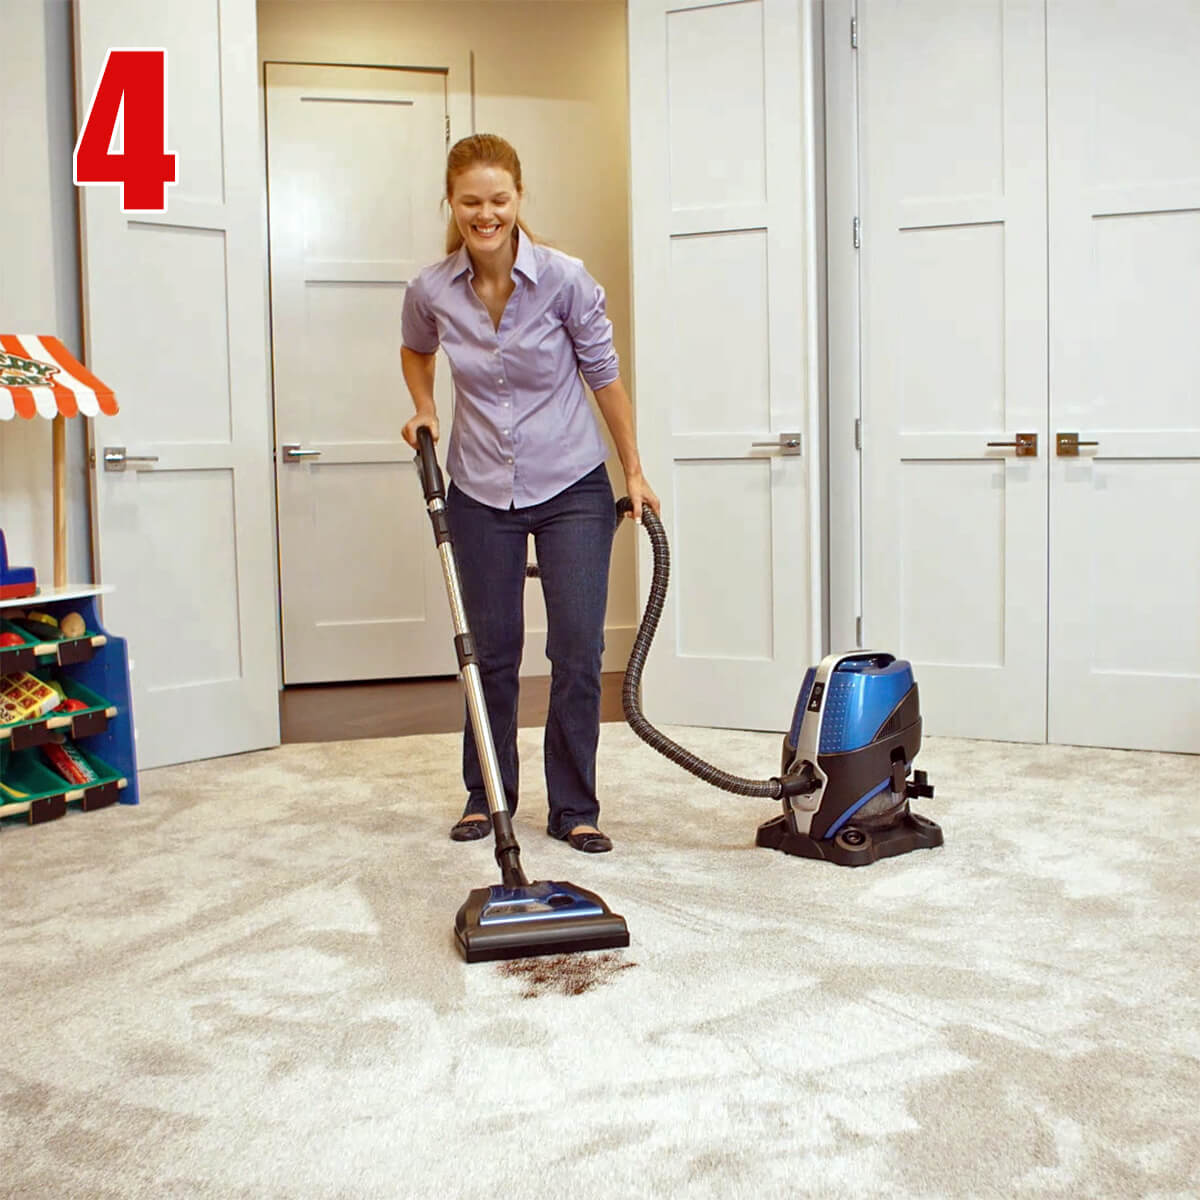 How To Use Your Sirena Vacuum Cleaner - Step 4